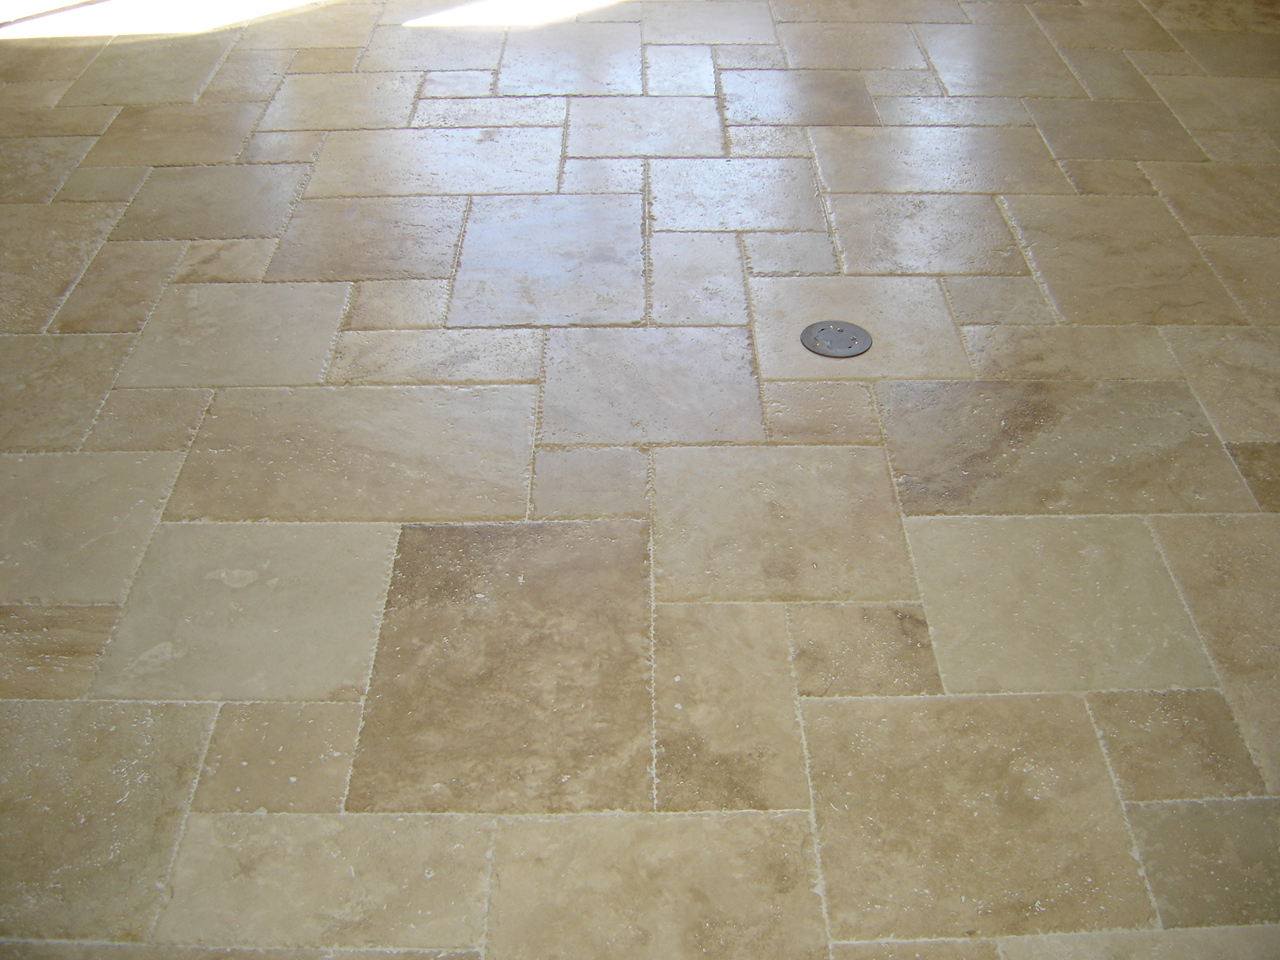 Tile Metrics Travertine French Patternsll Tile Metrics Waterjet Inlays